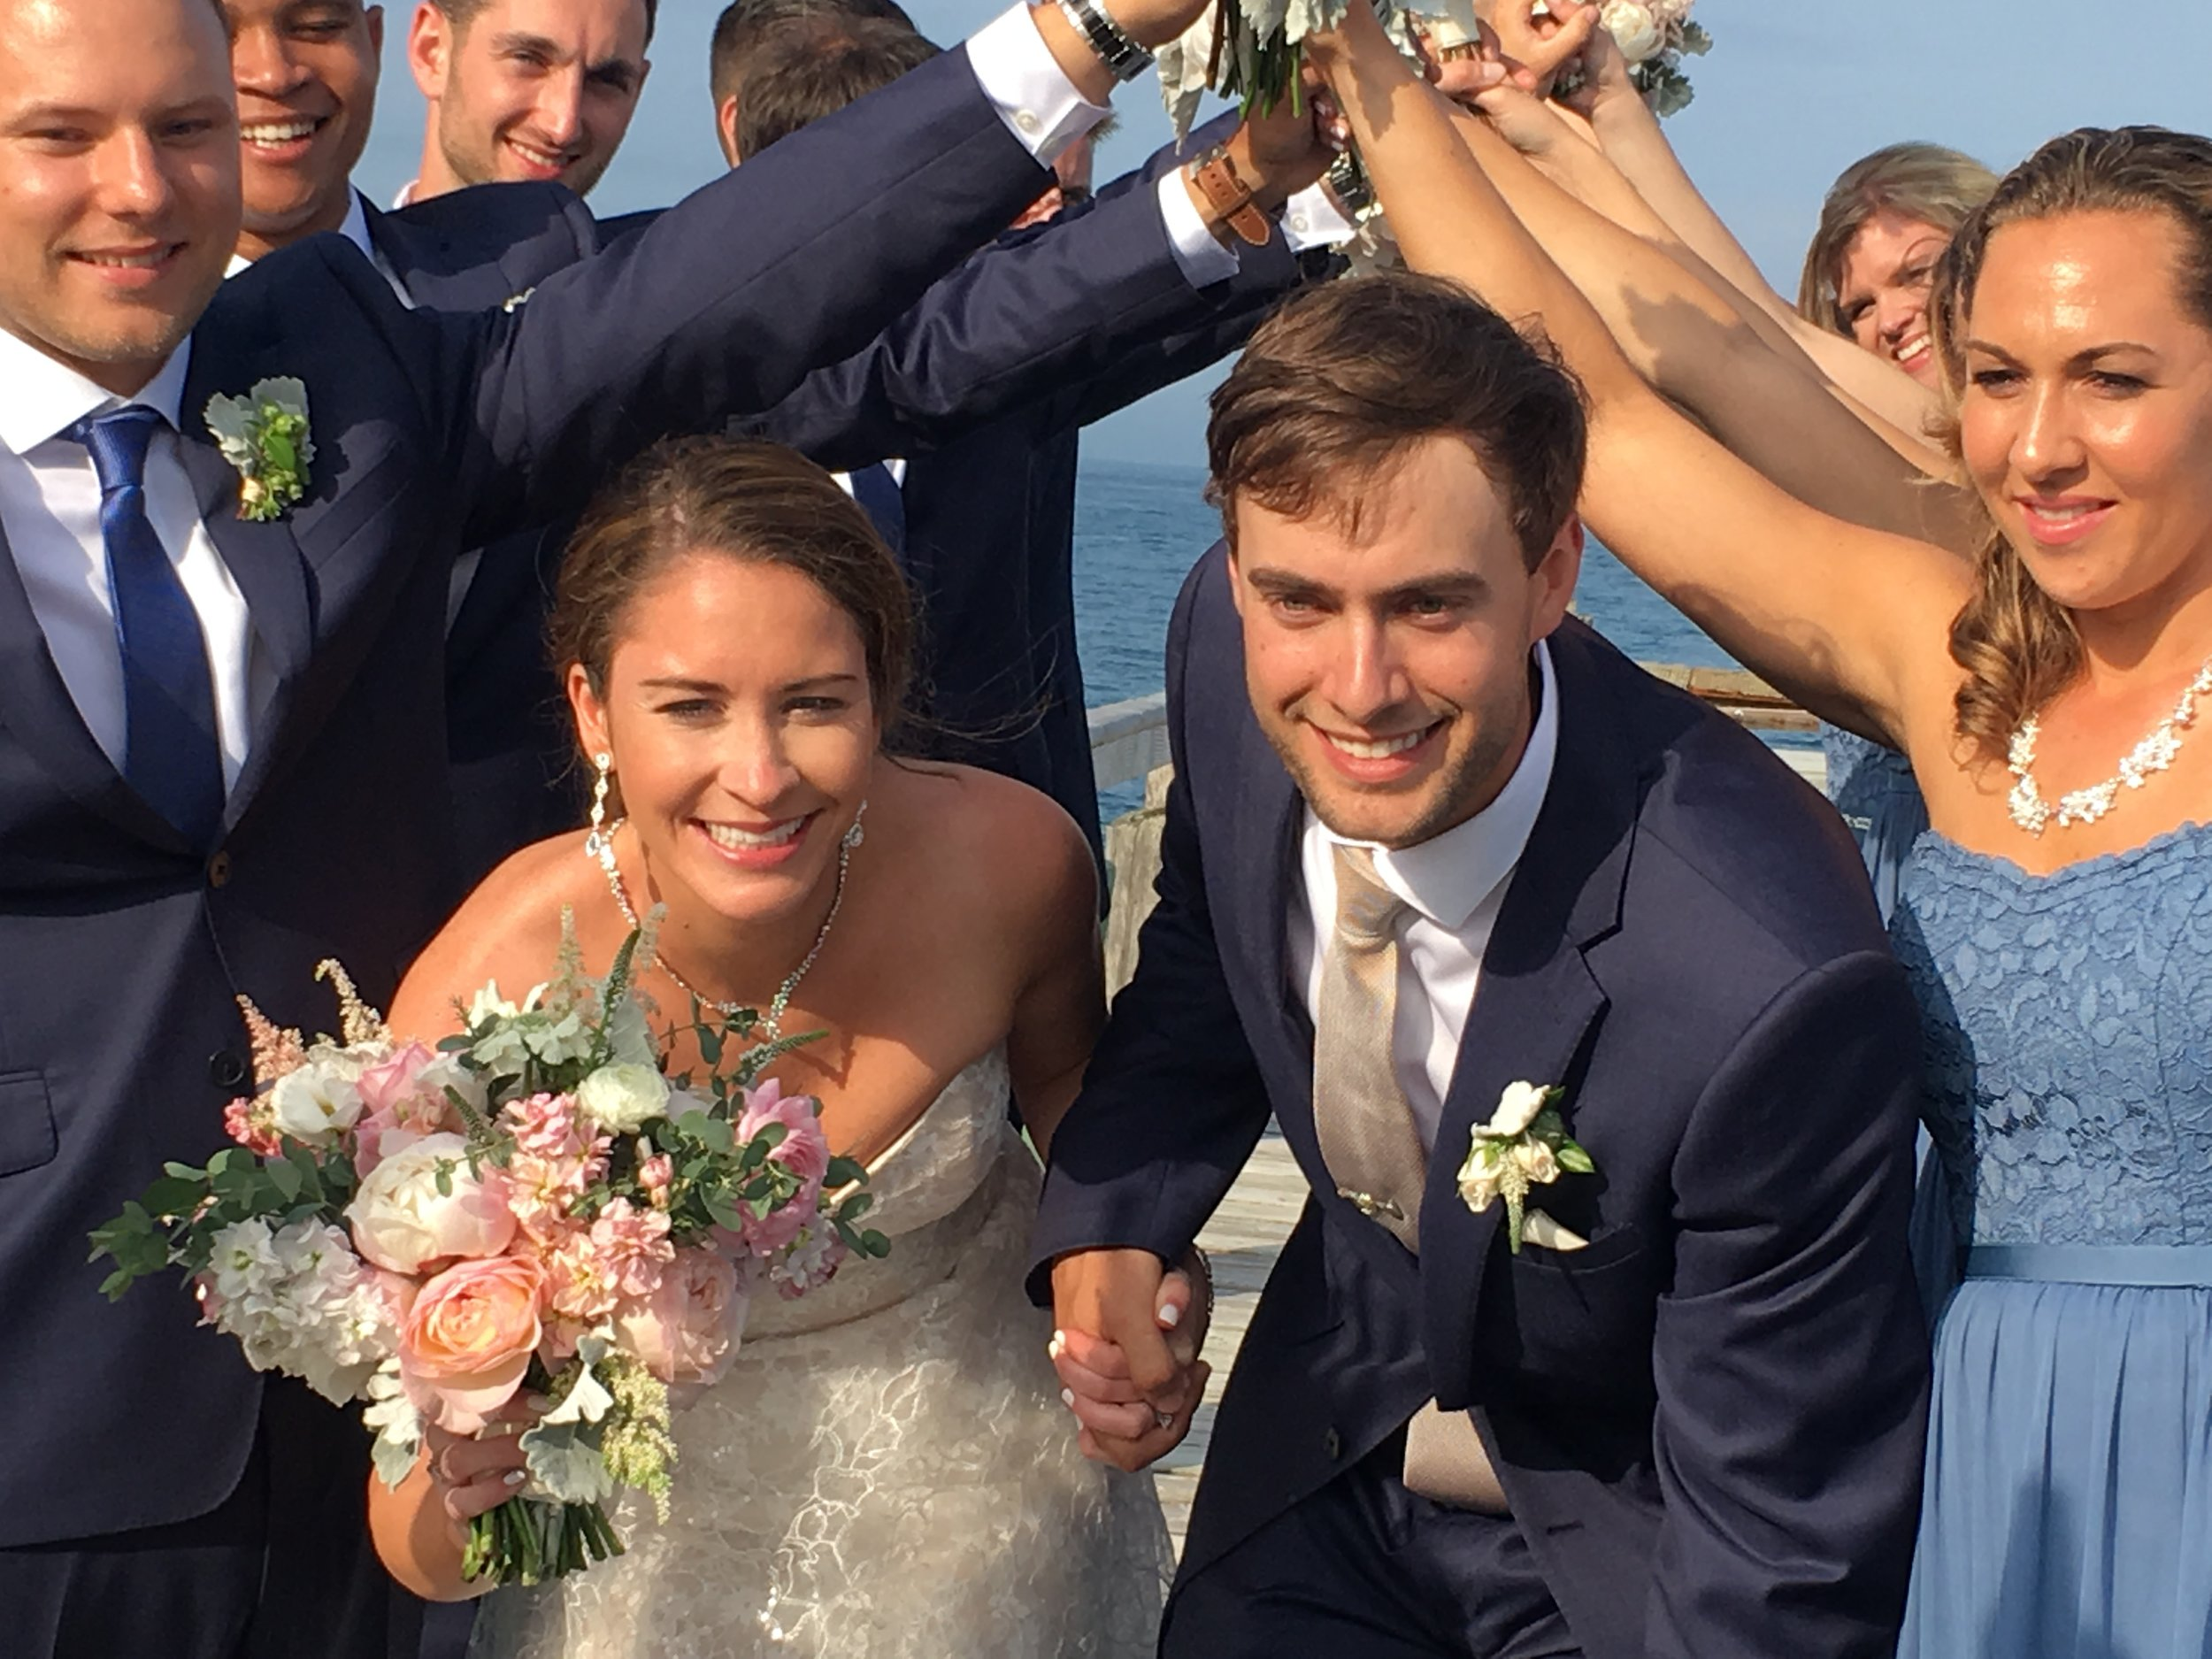 HUGE congrats to Cassidy and Will on tying the knot over the weekend!